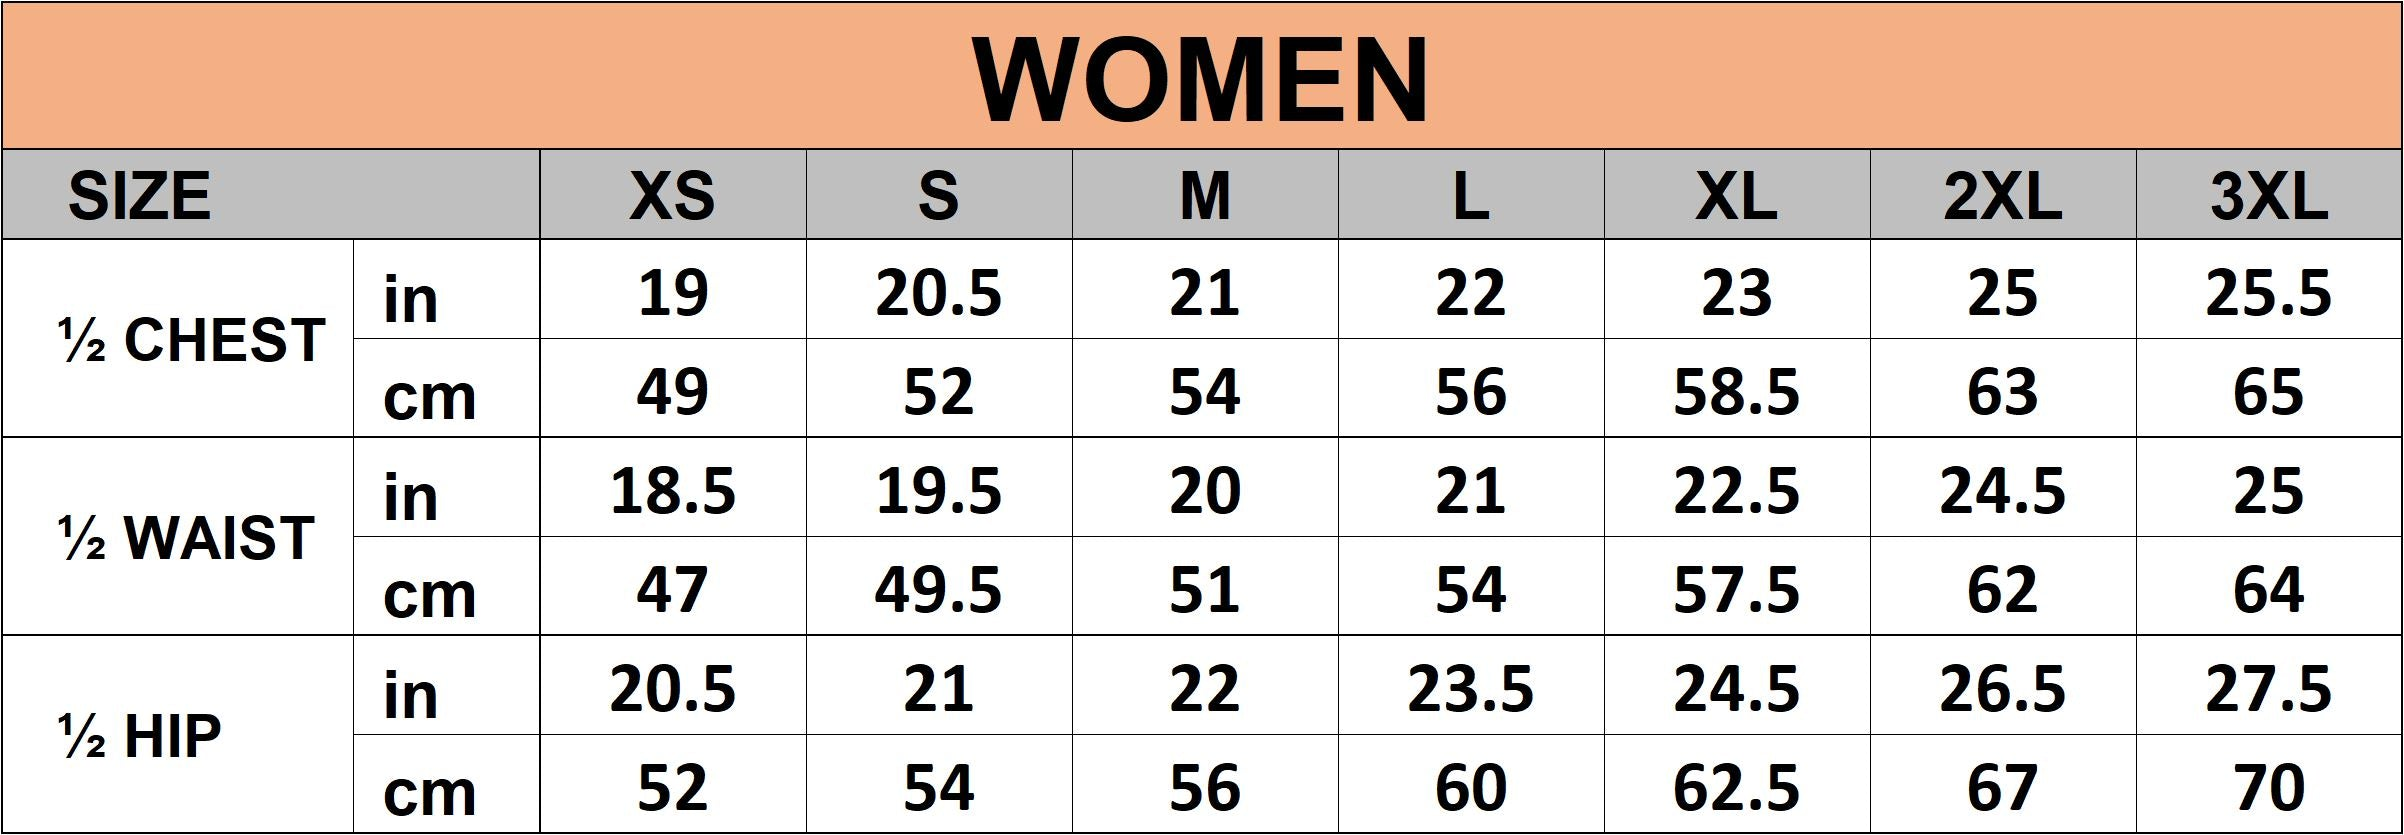 BOLLI-Dog-Owner-Jacket-Sizing-Chart-Women